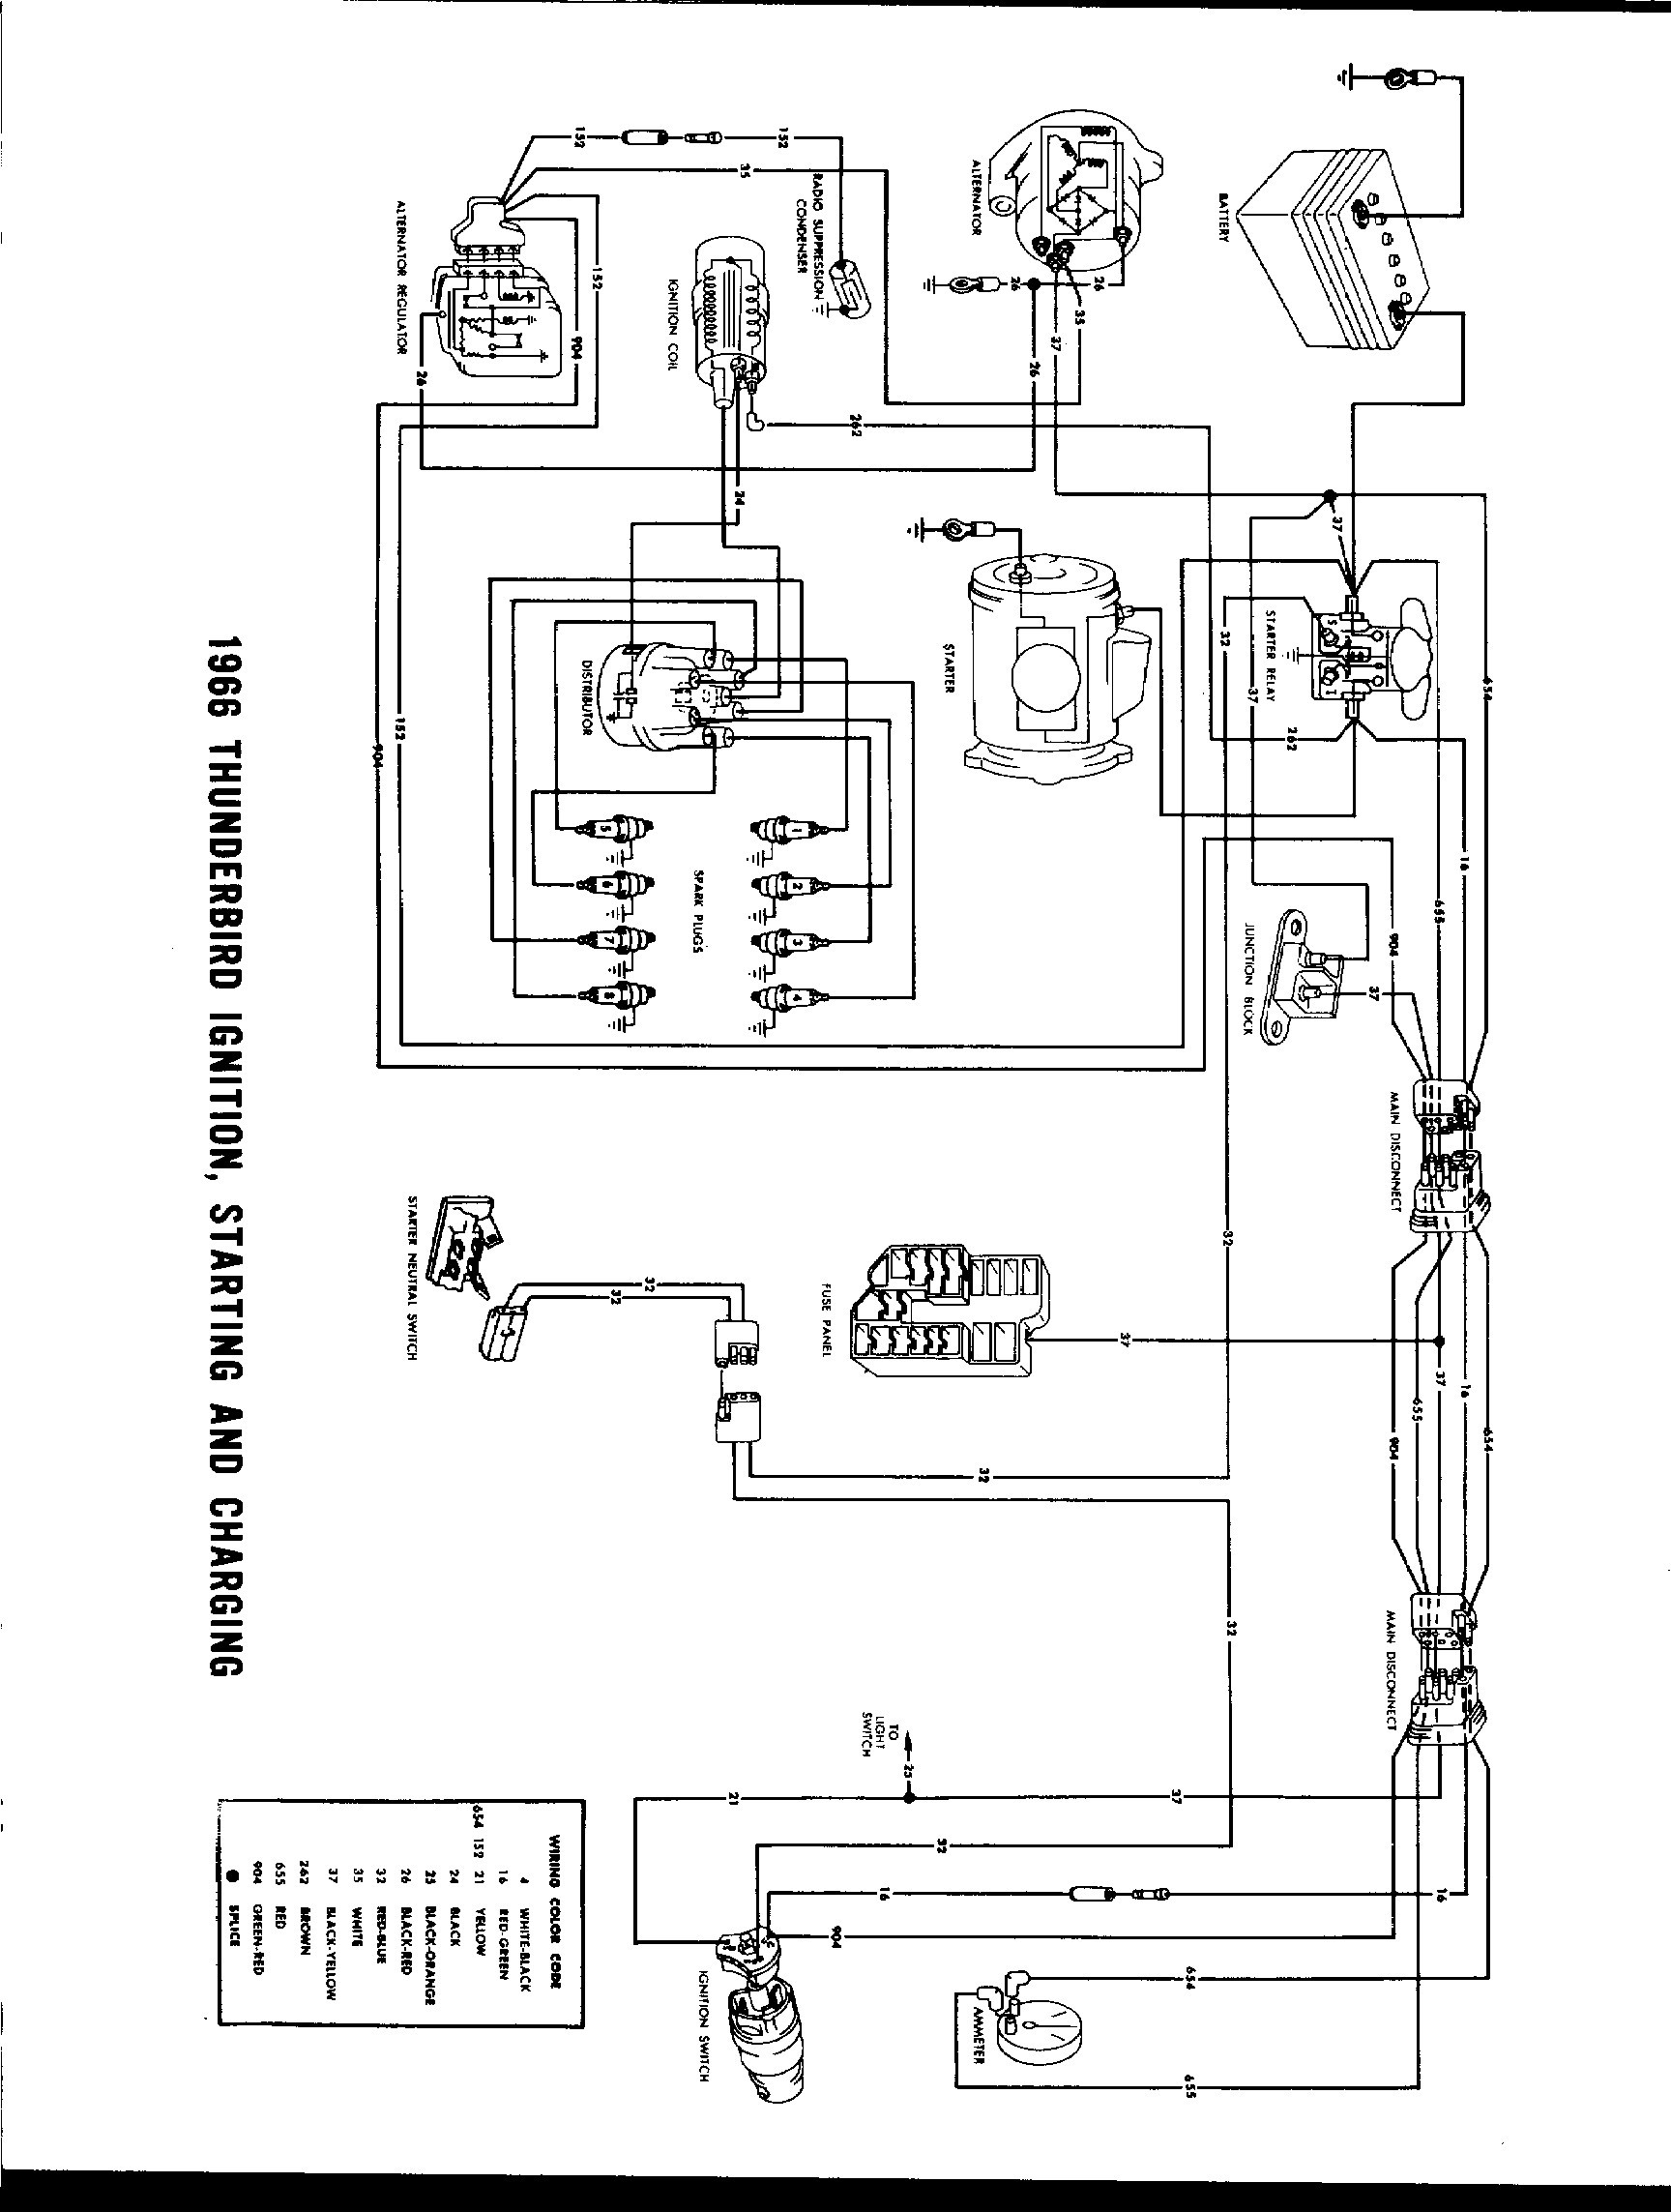 12 Volt Hydraulic Pump Wiring Diagram Astounding Monarch For Dump Trailer Luxury Sketch Electrical Of